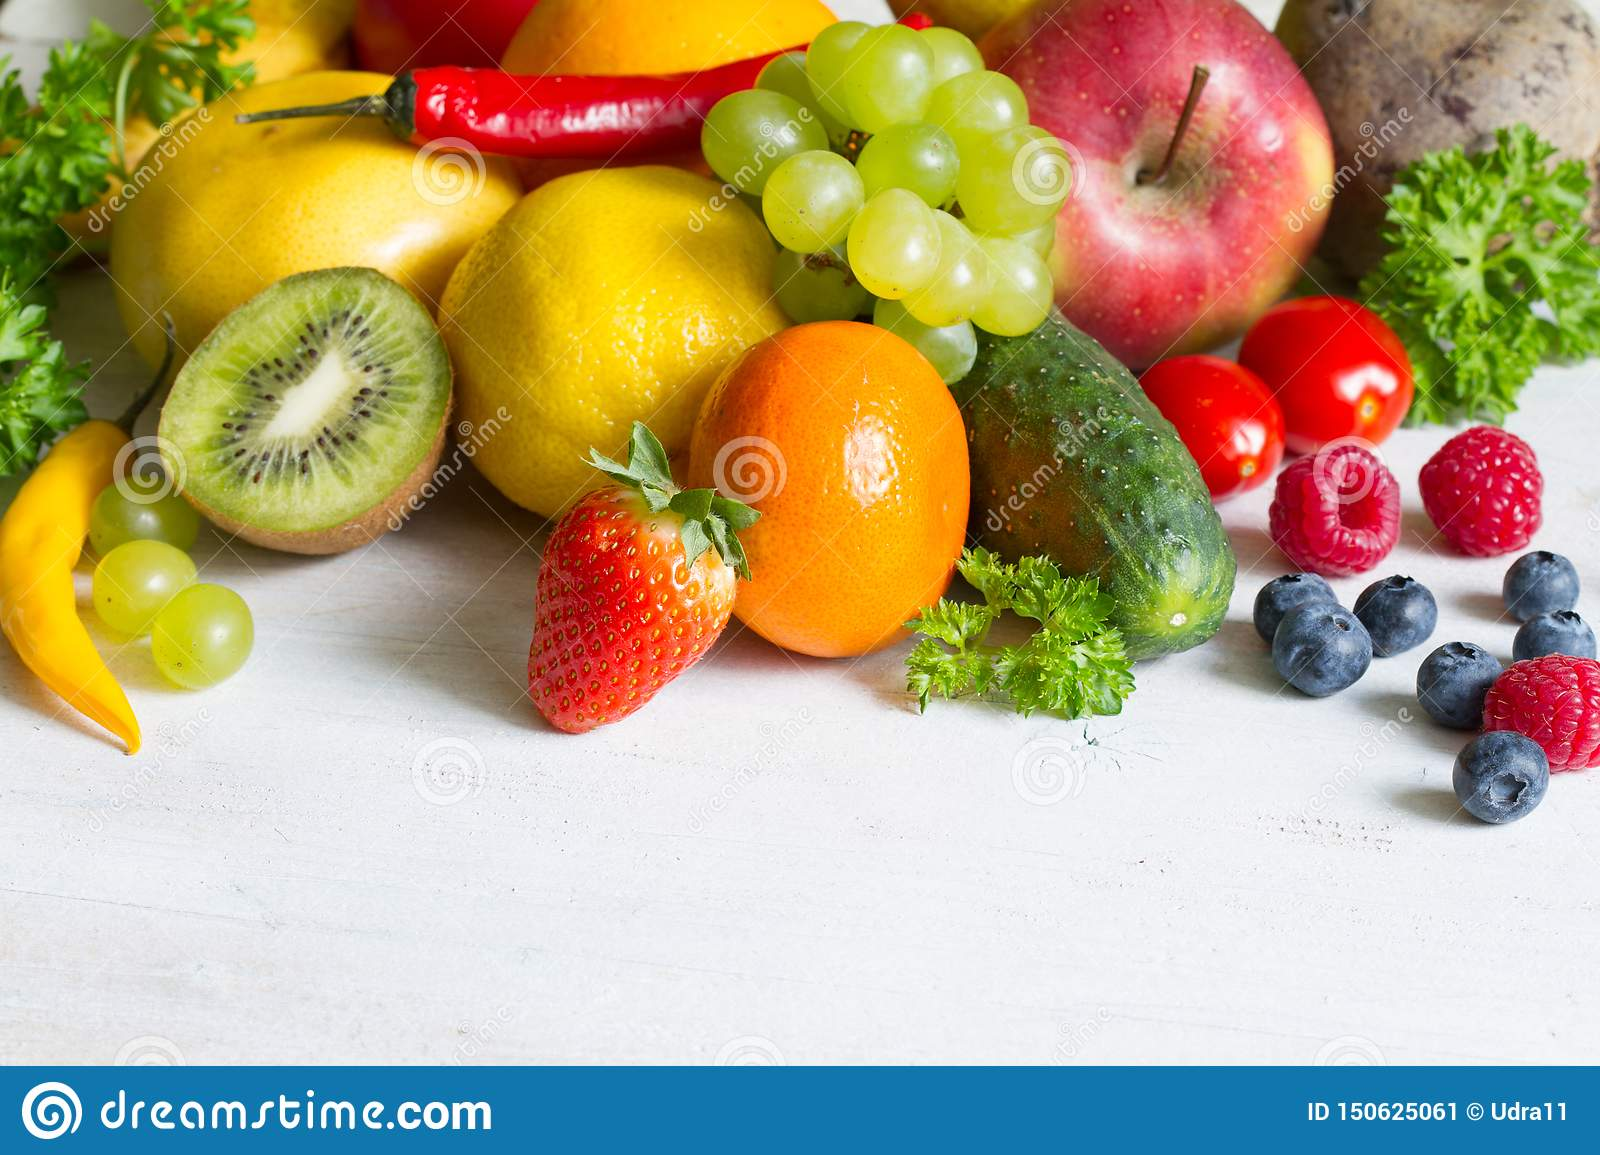 Fresh fruits and yvegetables healthy life style food fitness concept